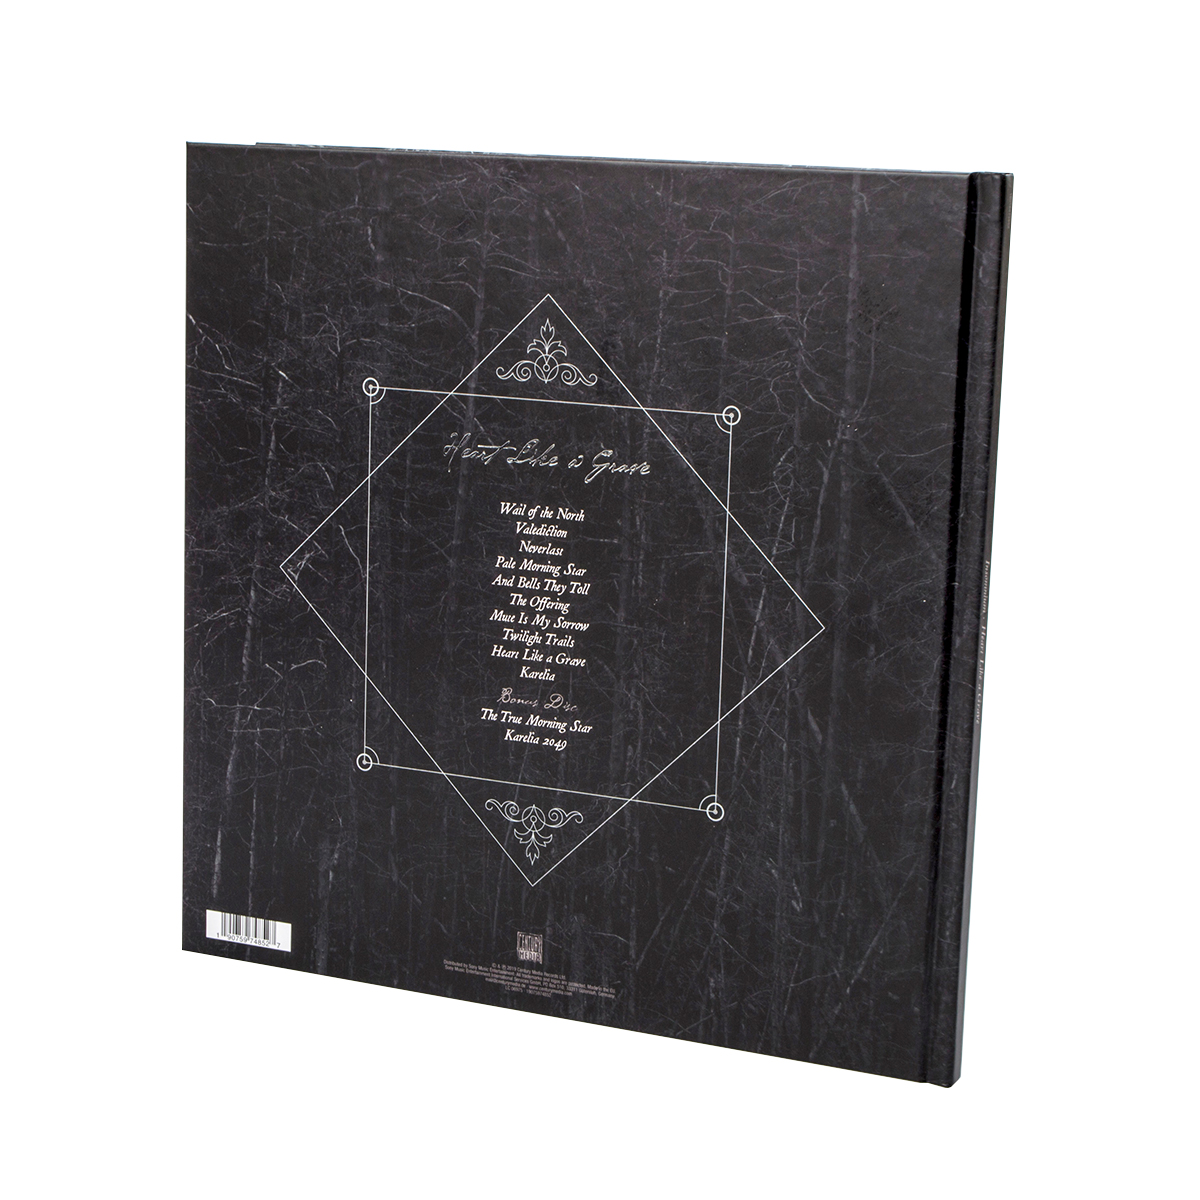 Insomnium  - Heart Like A Grave Limited Deluxe 2-CD Artbook + T-Shirt